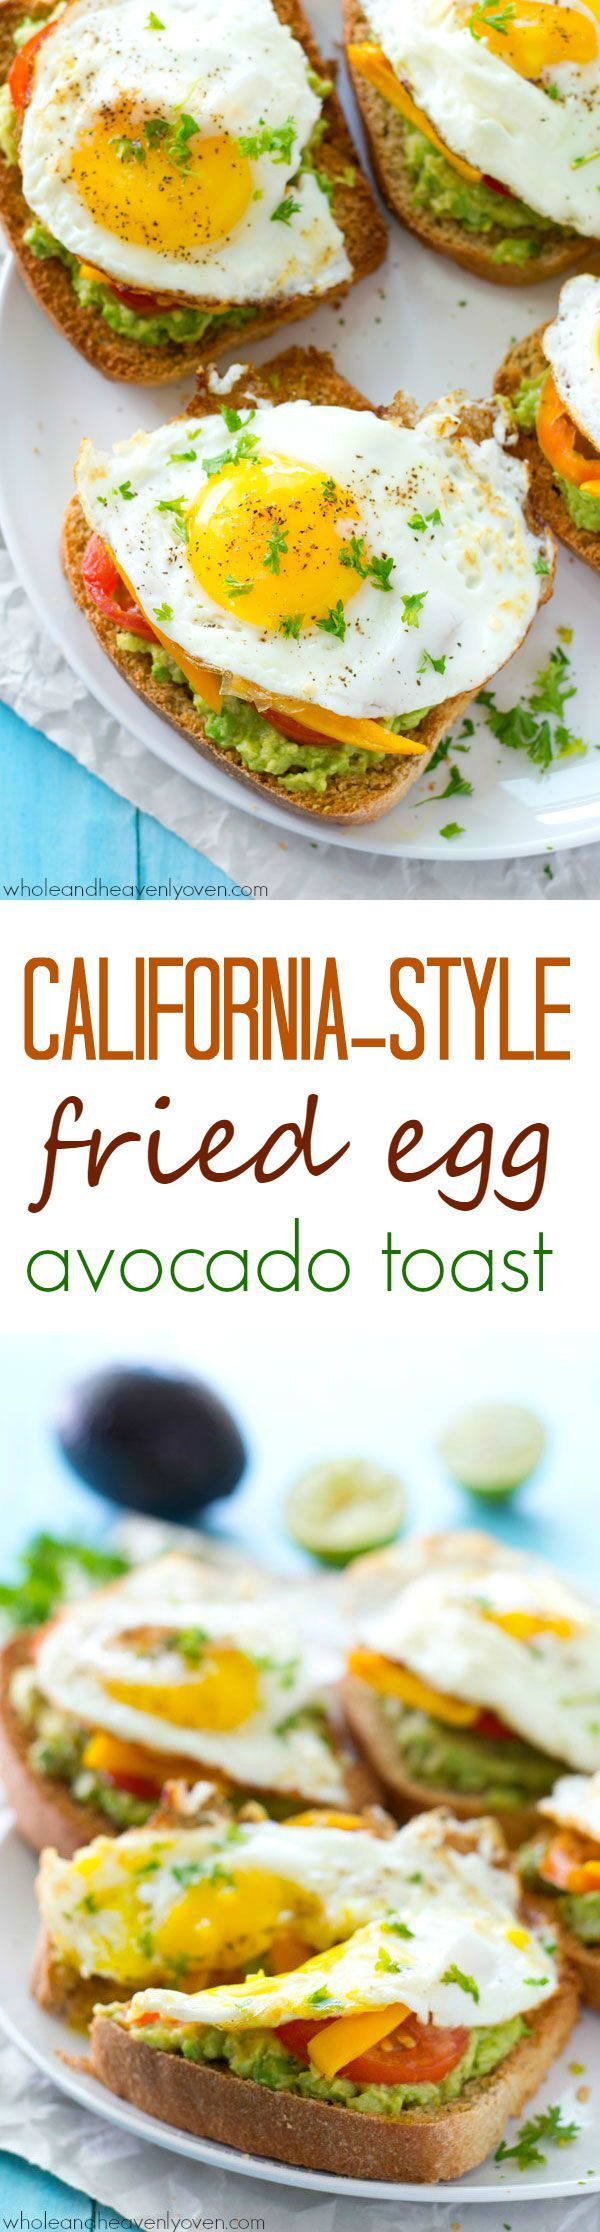 Avocado toast is given a fun California-style twist! This ultimate breakfast toast